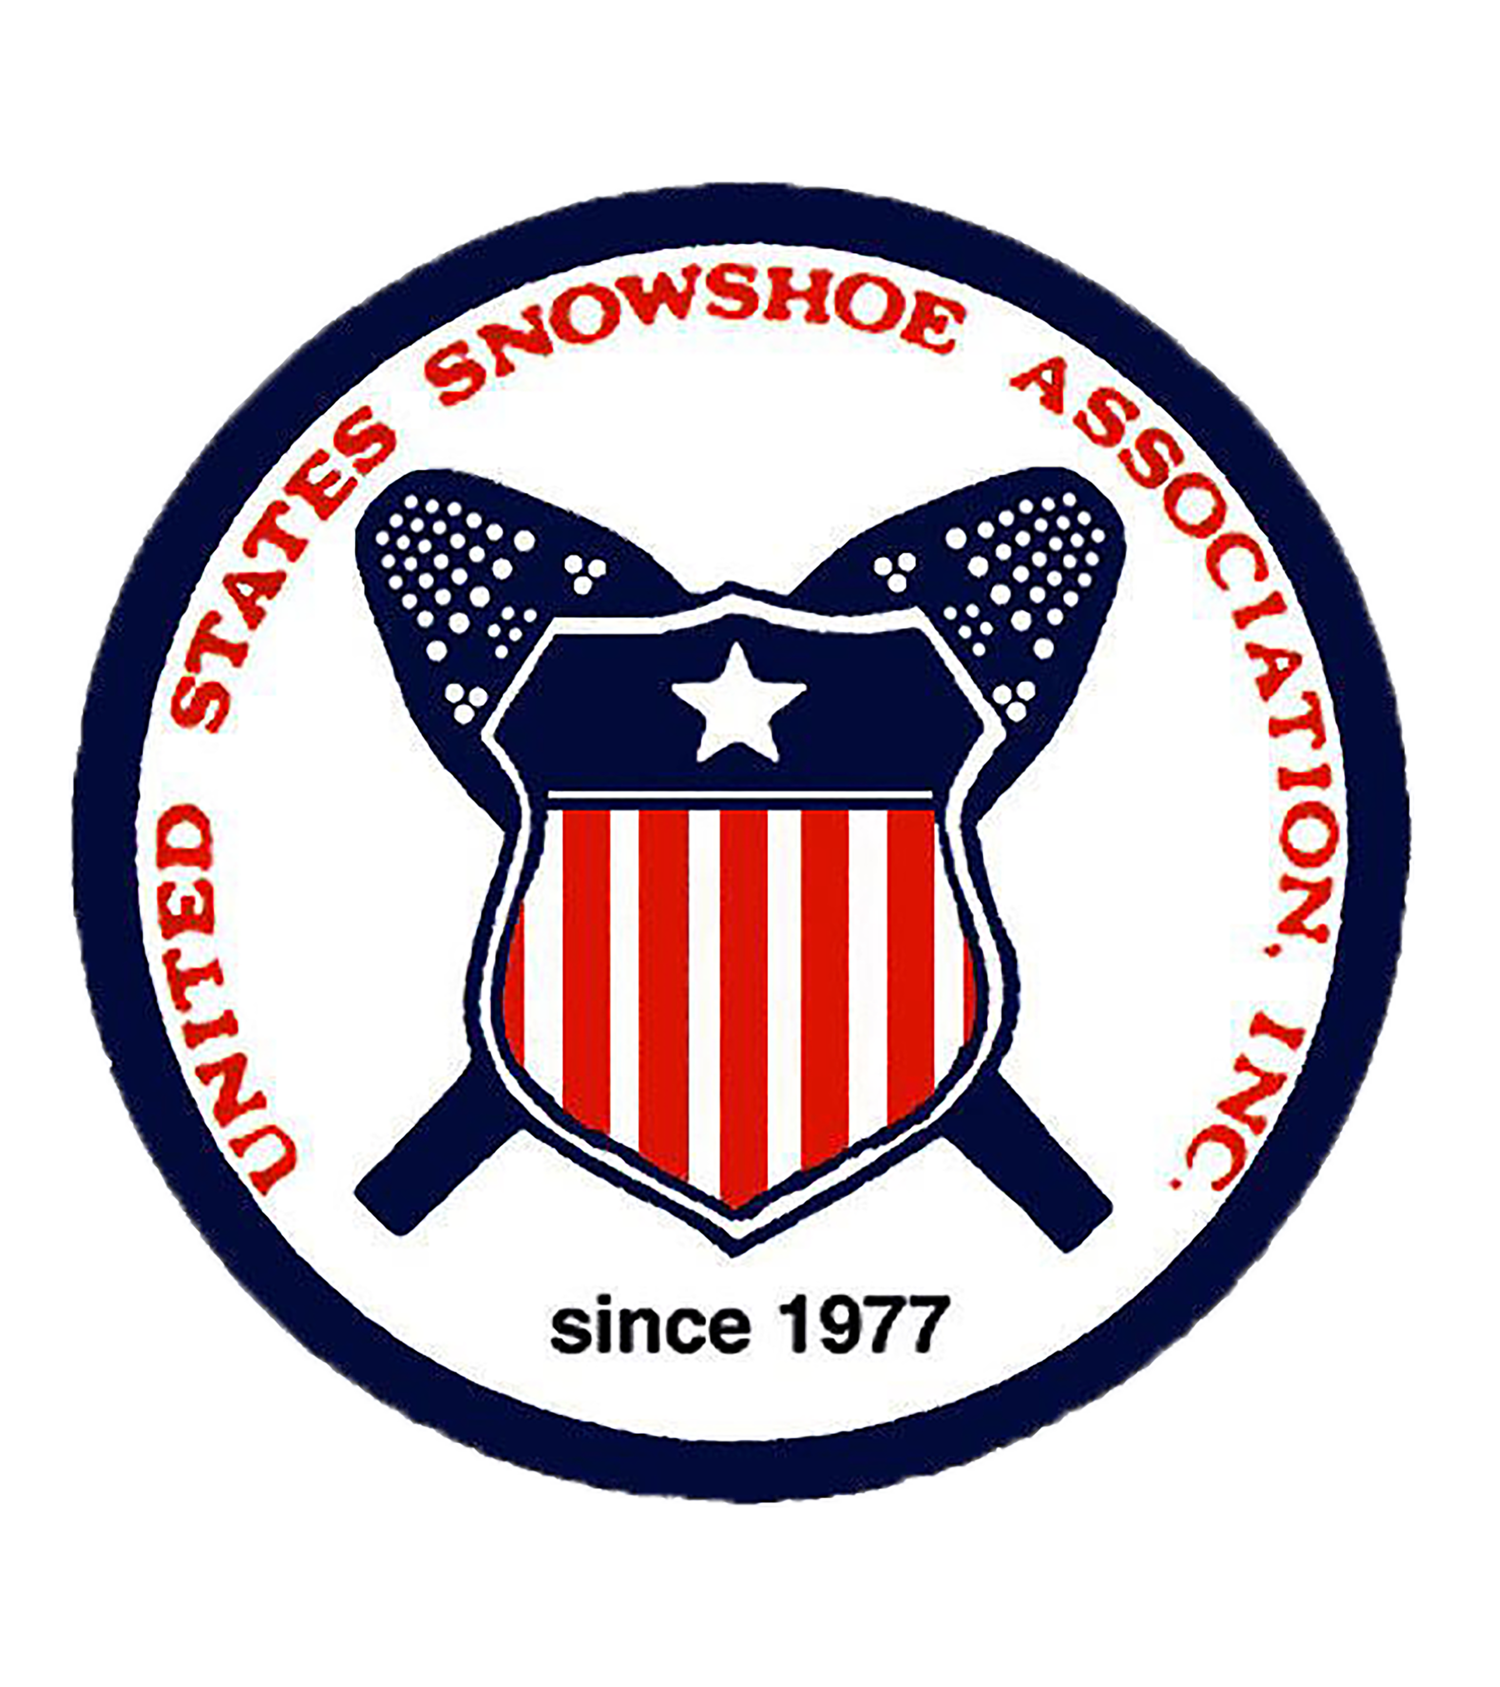 2019 US National Snowshoe Championships